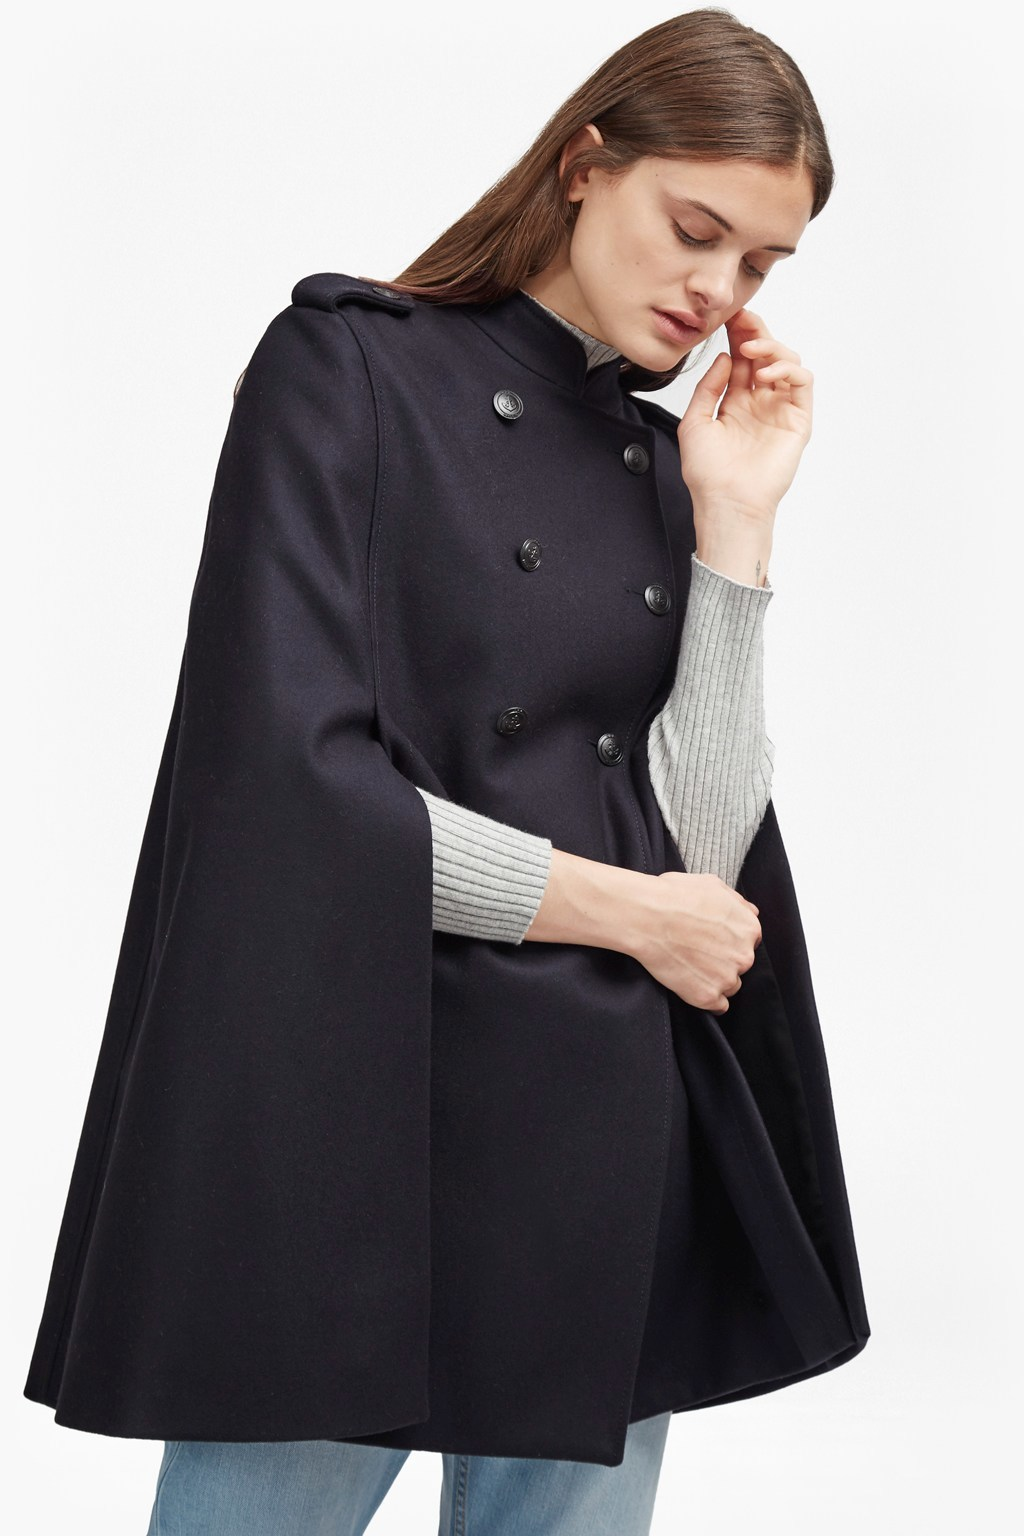 Platform Felt Double Breast Cape Utility Blue - pattern: plain; fit: loose; style: cape; collar: high neck; length: mid thigh; predominant colour: black; occasions: casual; fibres: wool - mix; sleeve length: long sleeve; collar break: high; pattern type: fabric; texture group: woven bulky/heavy; sleeve style: cape/poncho sleeve; season: a/w 2016; wardrobe: highlight